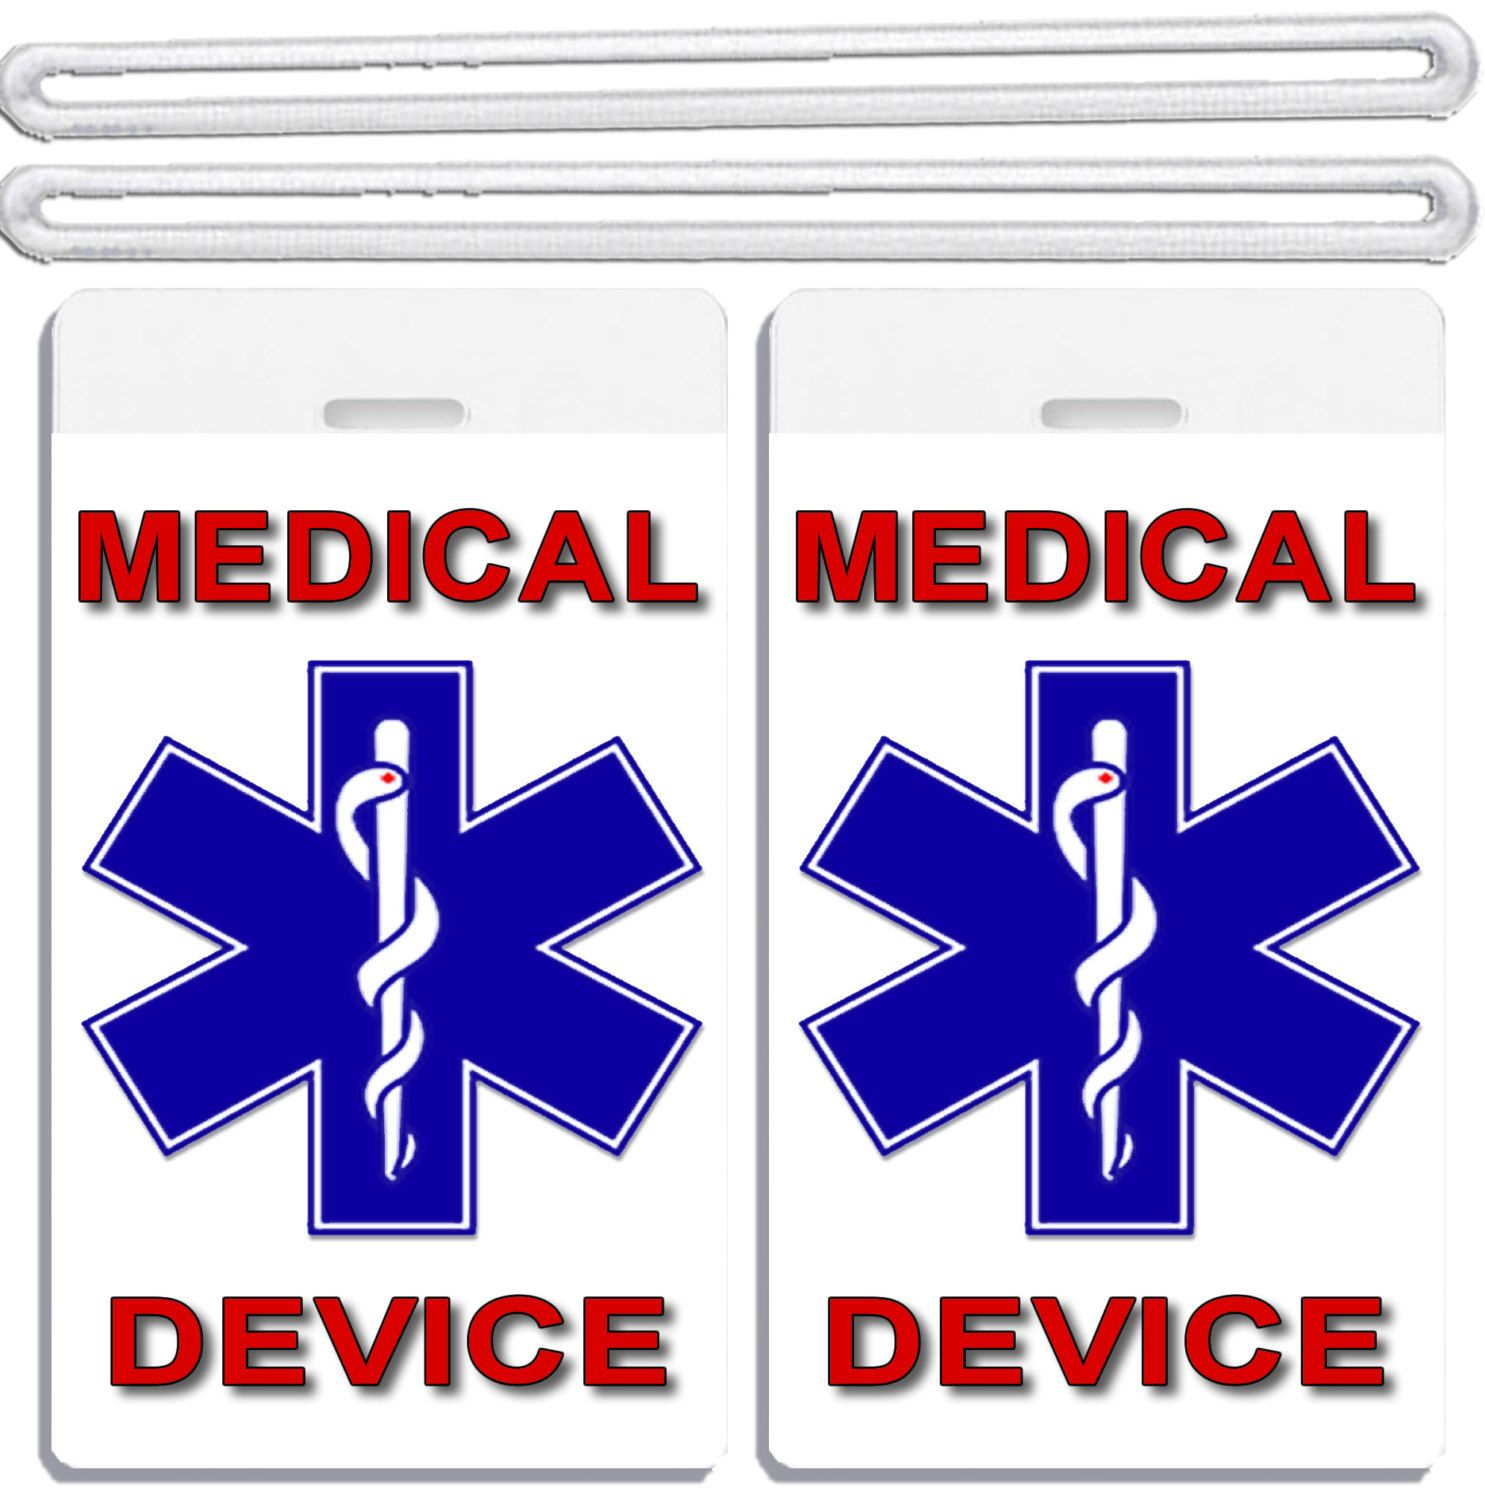 photo about Medical Equipment Luggage Tag Printable known as Pin upon Bags Tags + Healthcare Tags